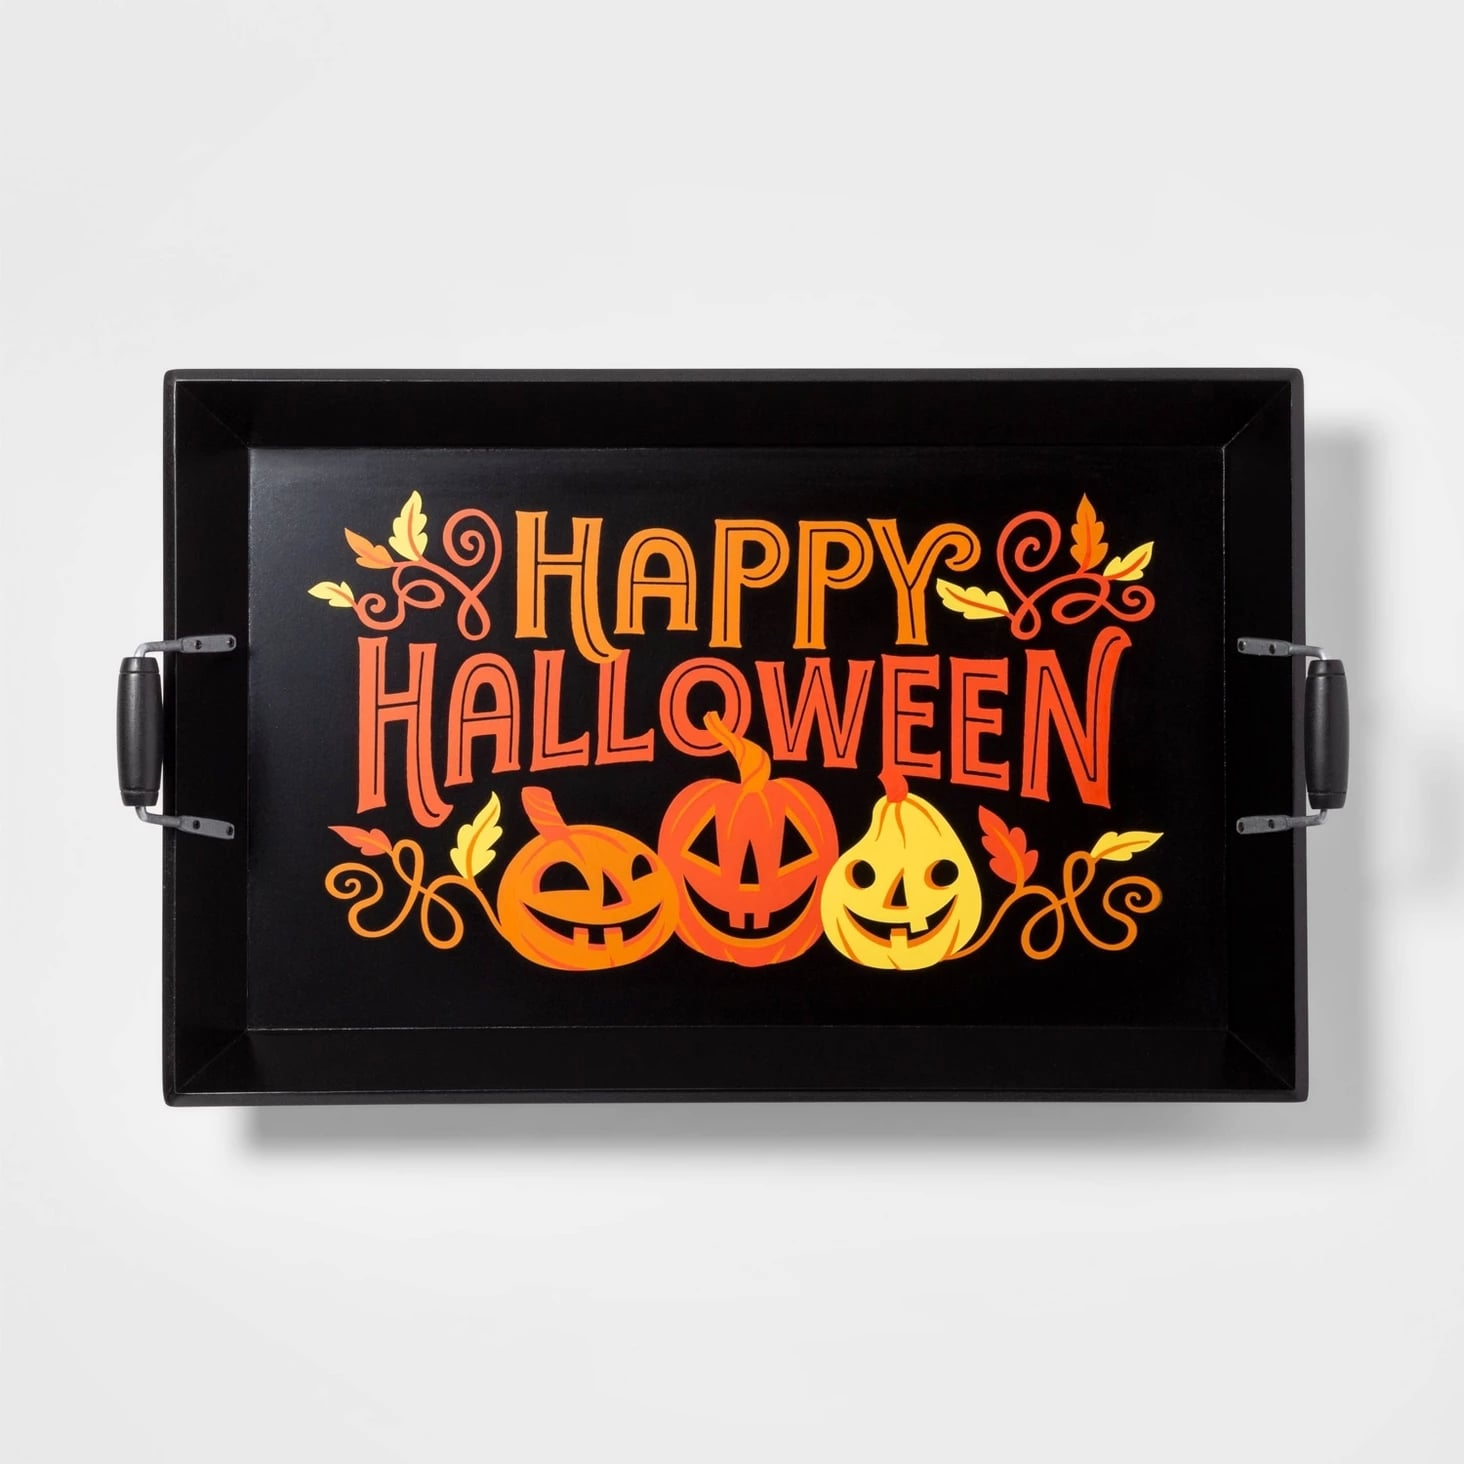 Happy Halloween Wood Serving Tray Target Has So Much